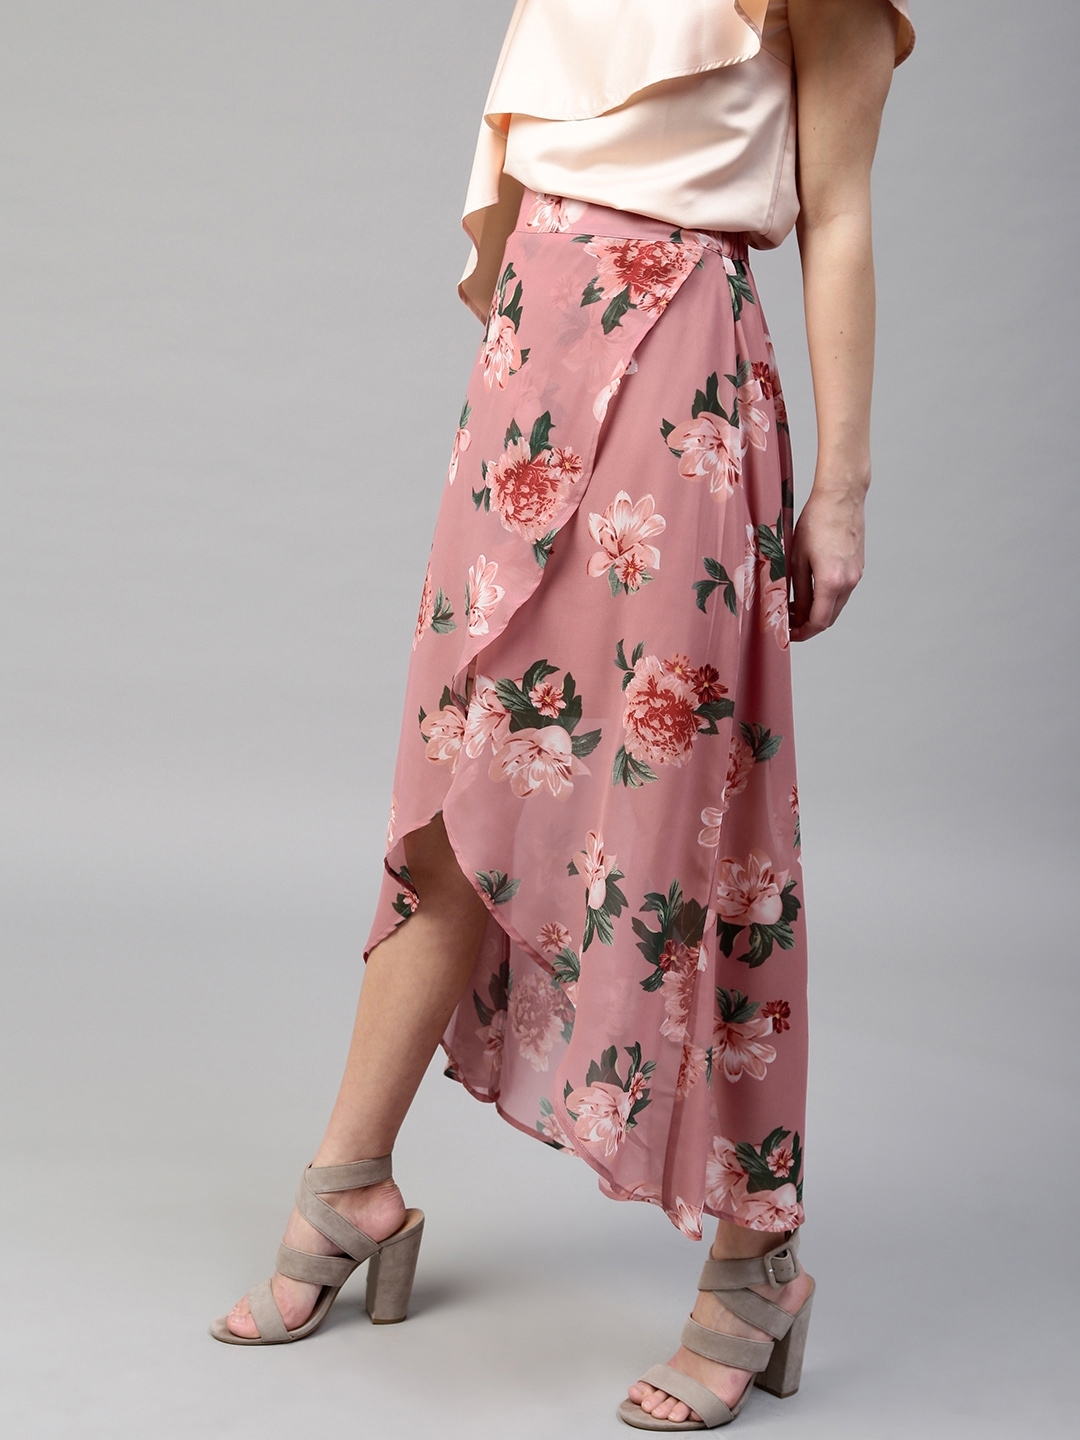 6605c478c6 Buy SASSAFRAS Pink & Green Floral Print High Low Maxi Tulip Skirt ...